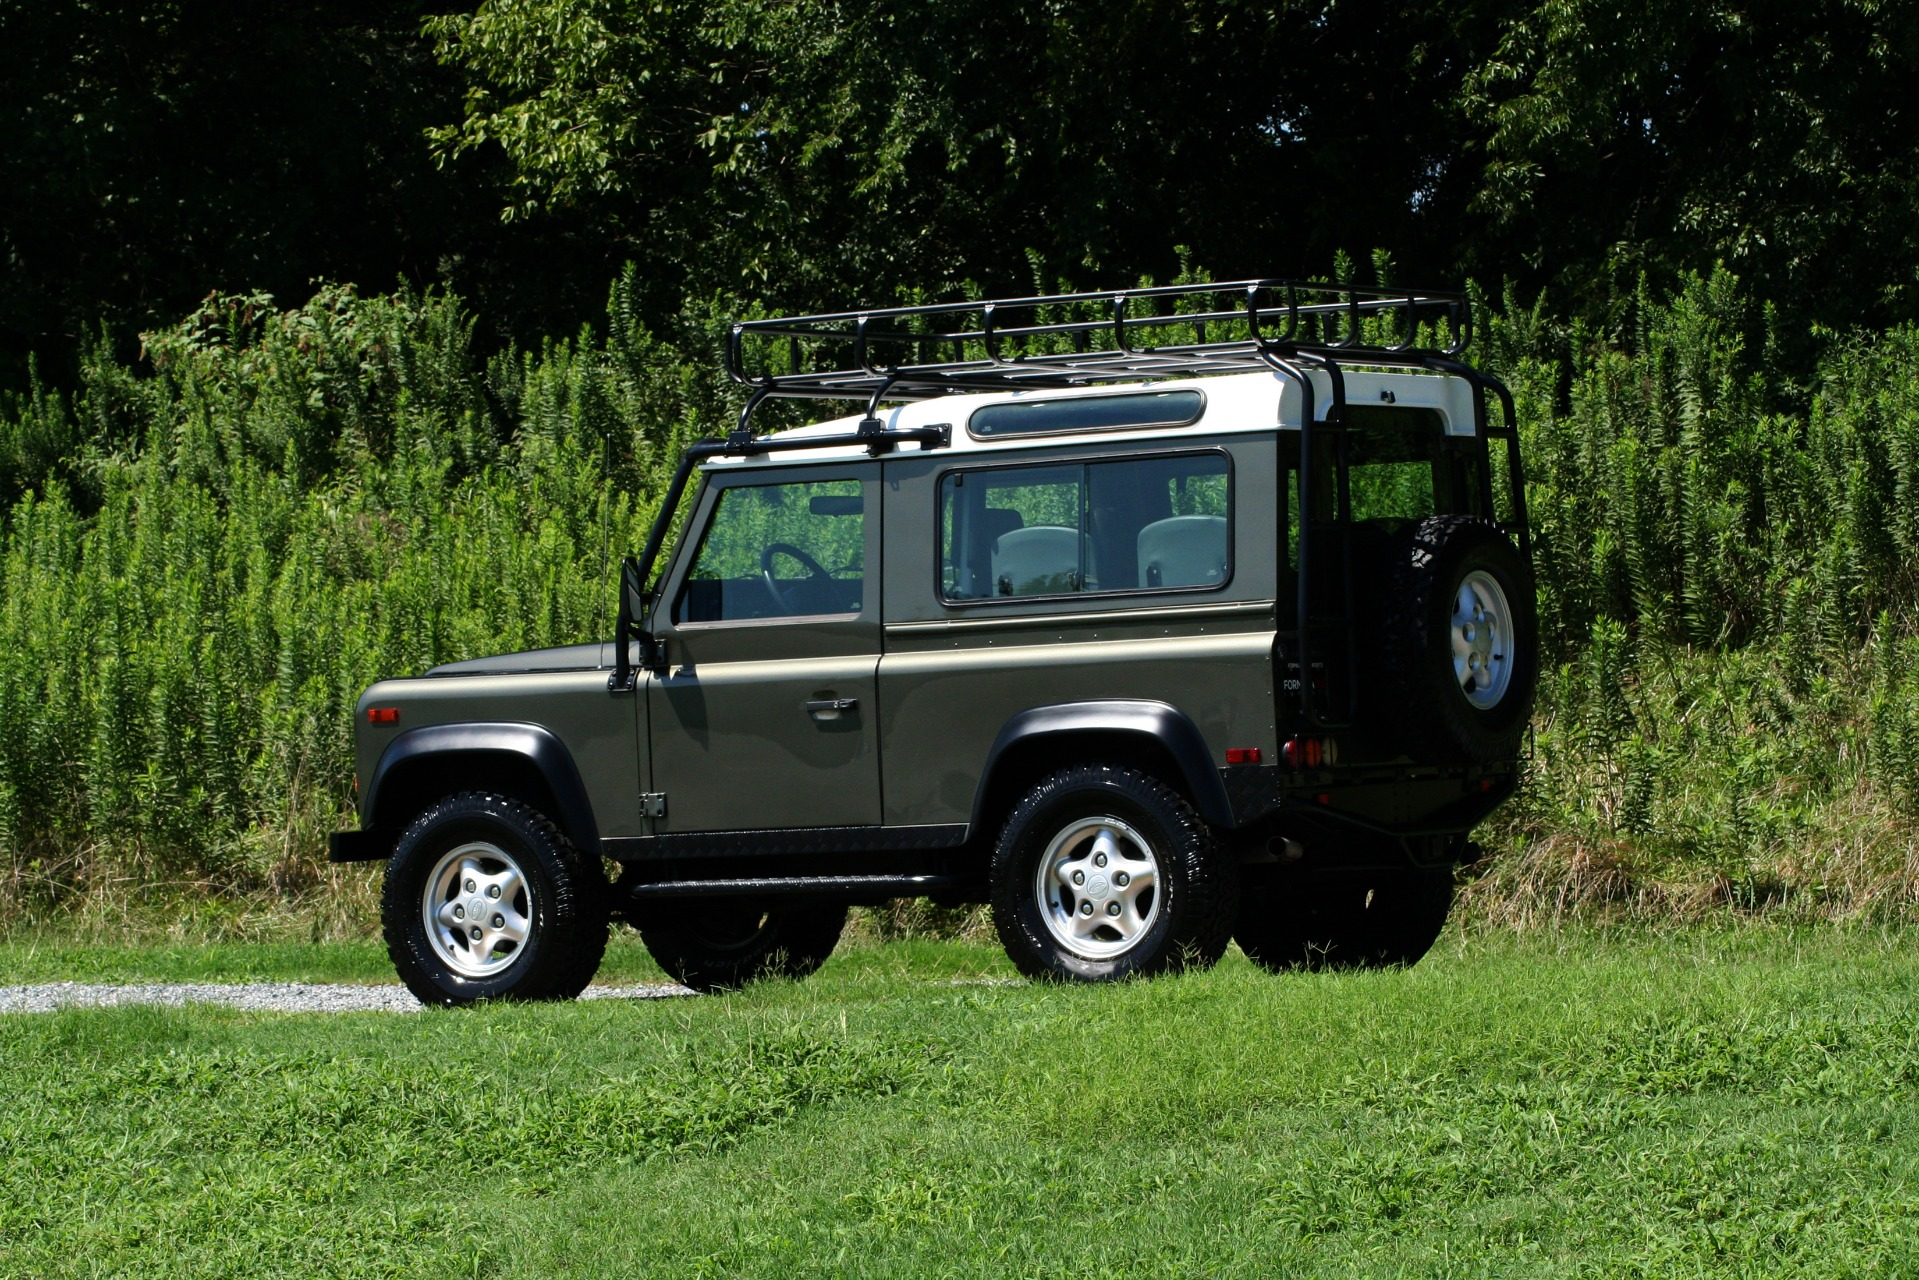 Used 1997 Land Rover DEFENDER 90 LIMITED EDITION / HARD-TOP / 4WD / FULLY RESTORED / LOW MILES for sale $119,000 at Formula Imports in Charlotte NC 28227 13